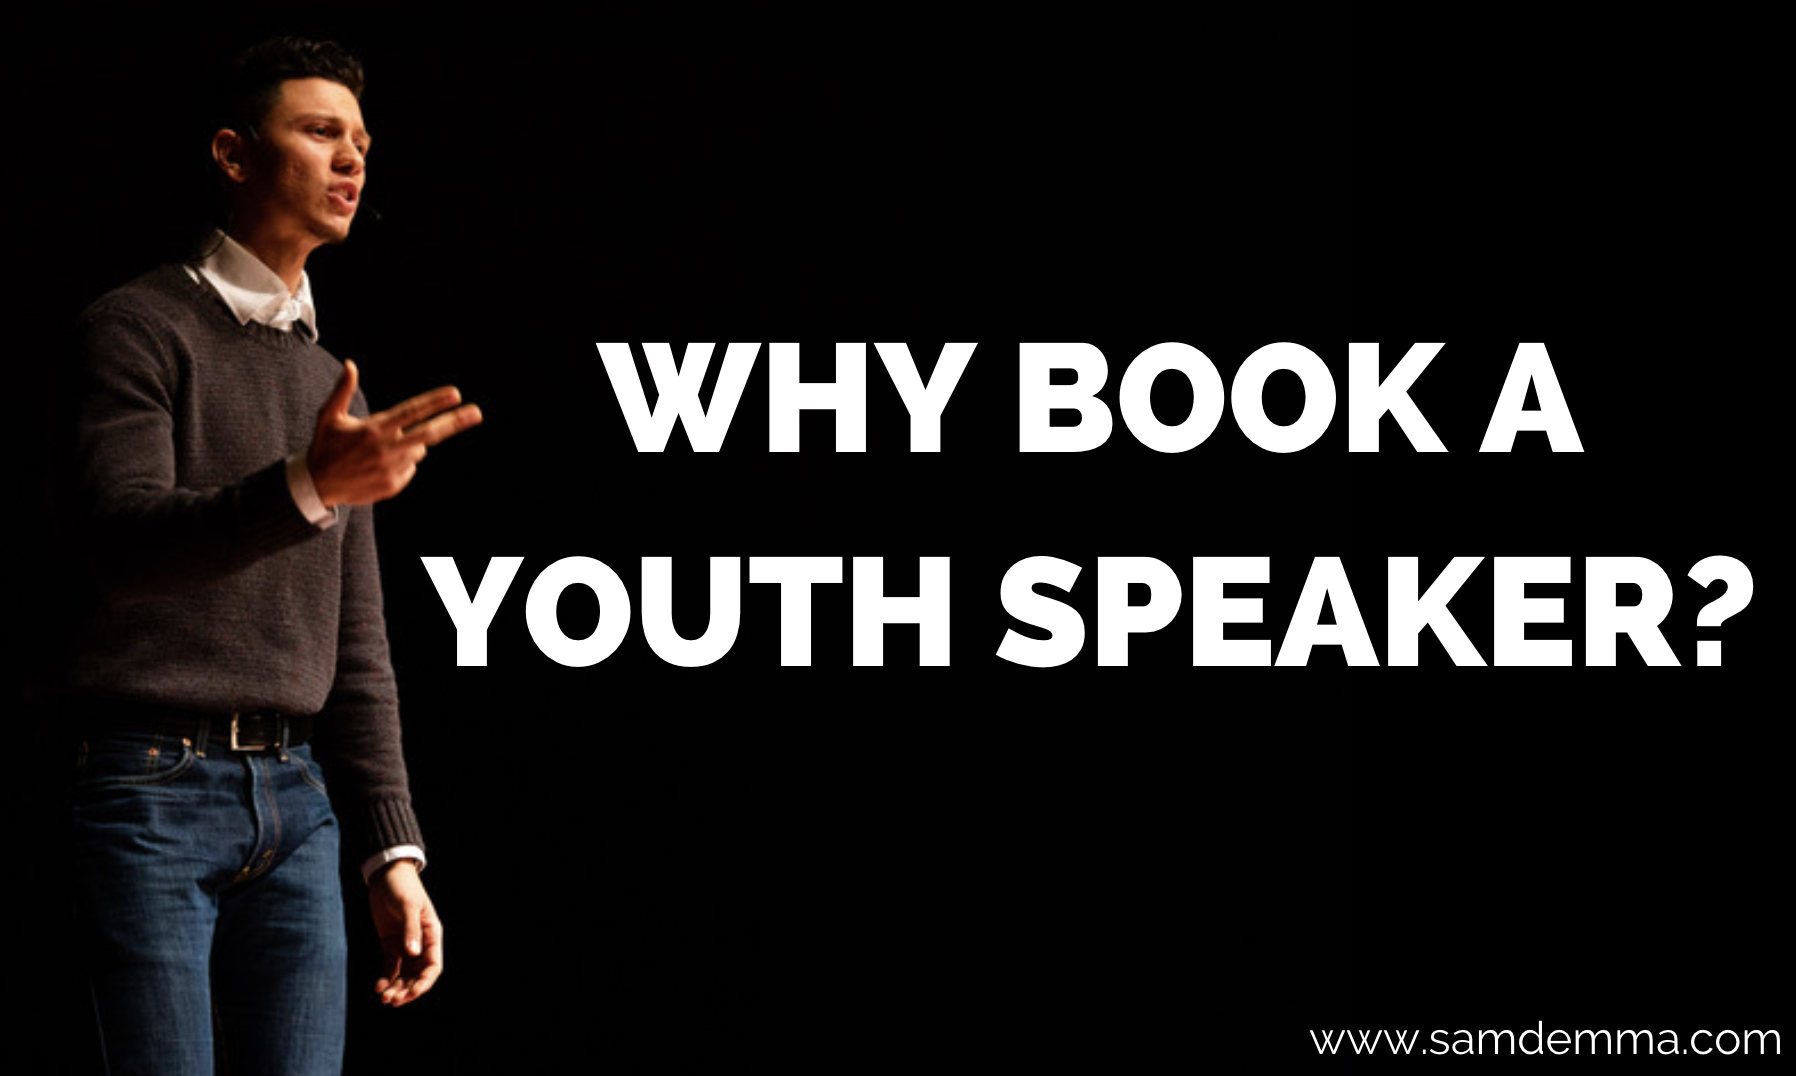 Why book a youth speaker